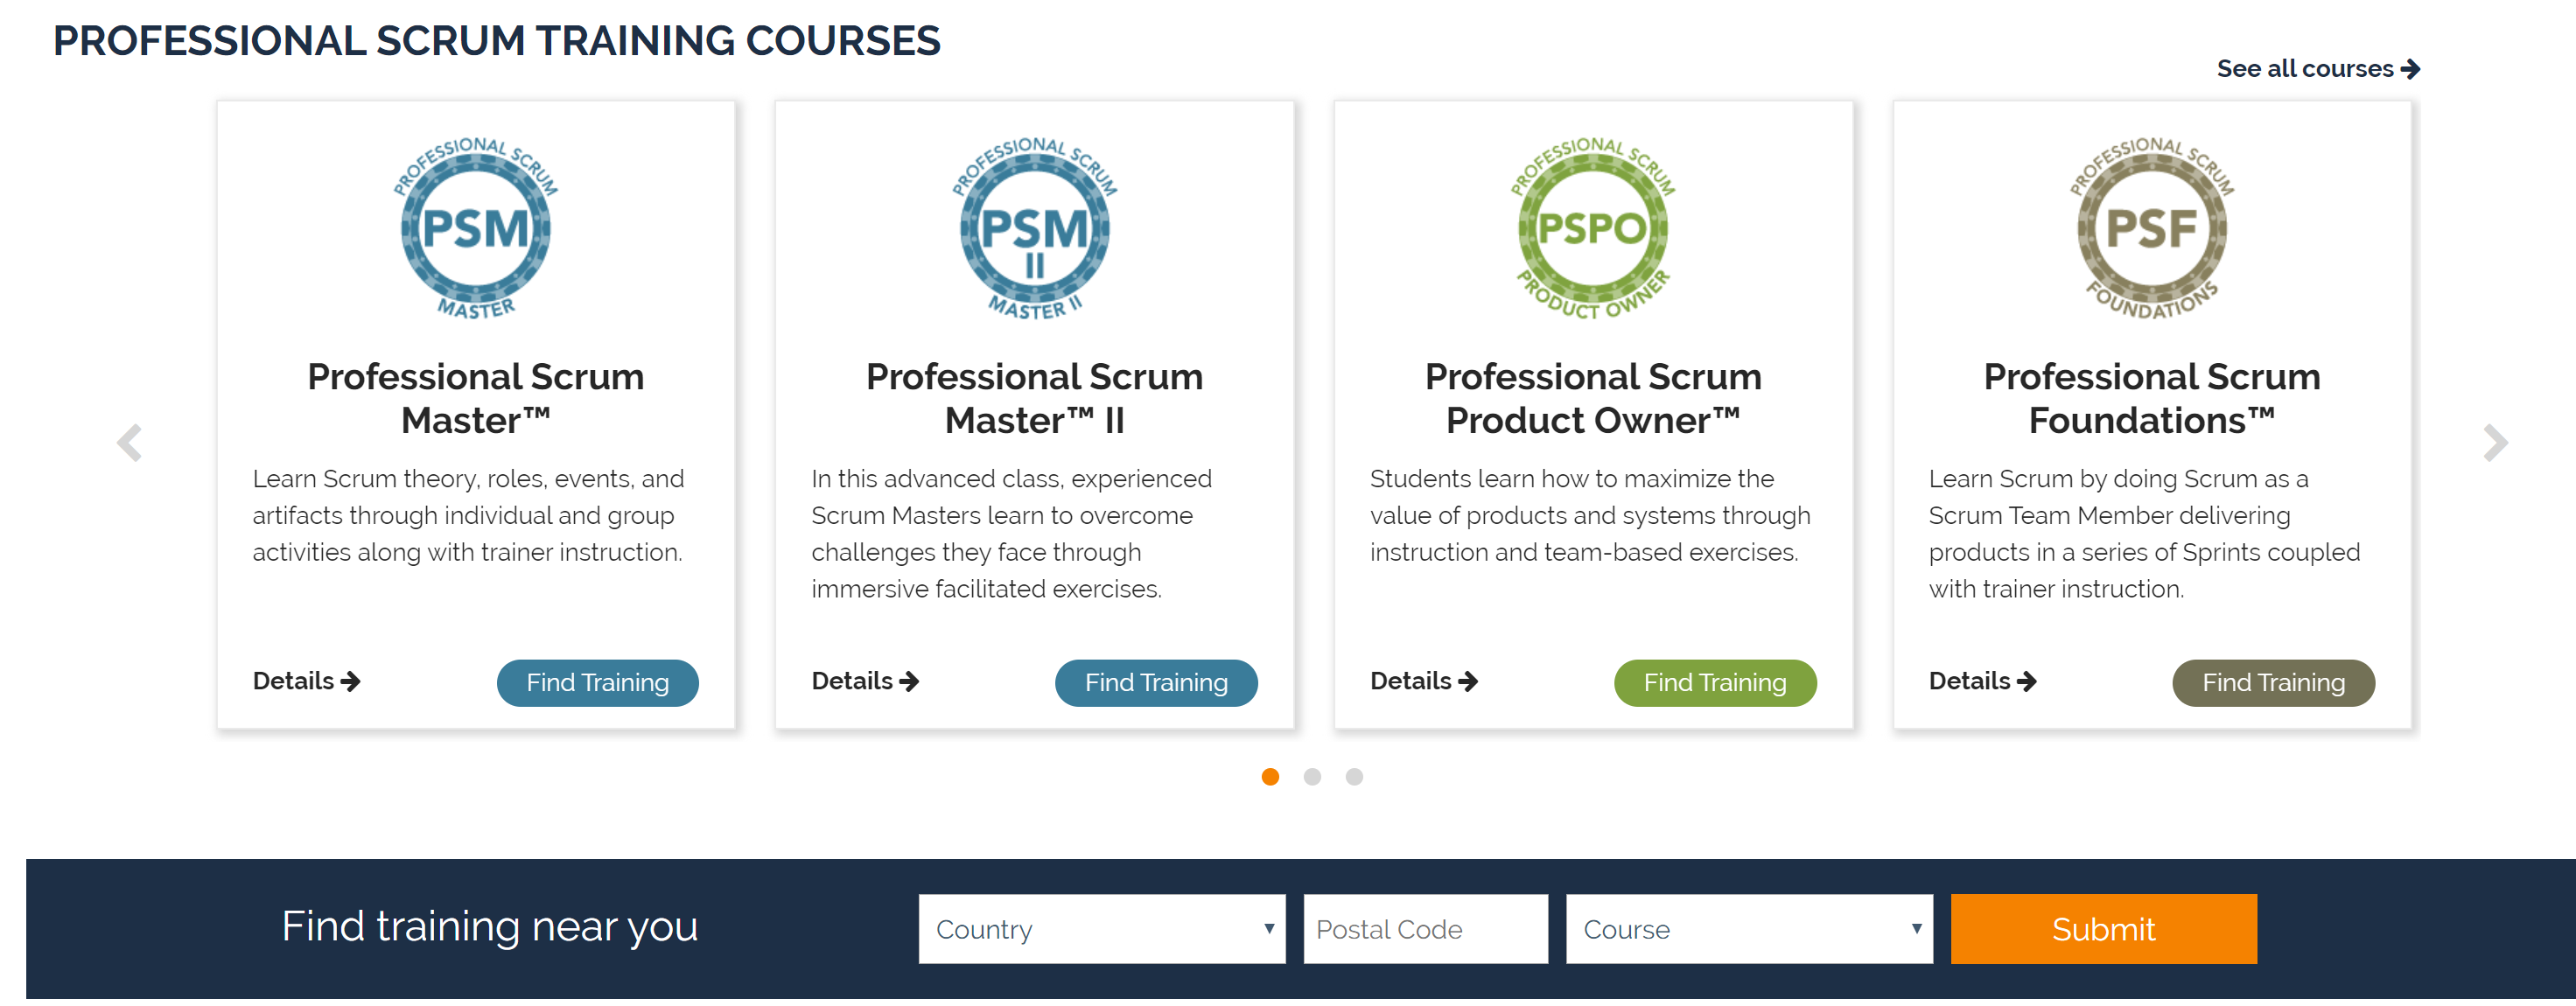 Best Scrum courses online